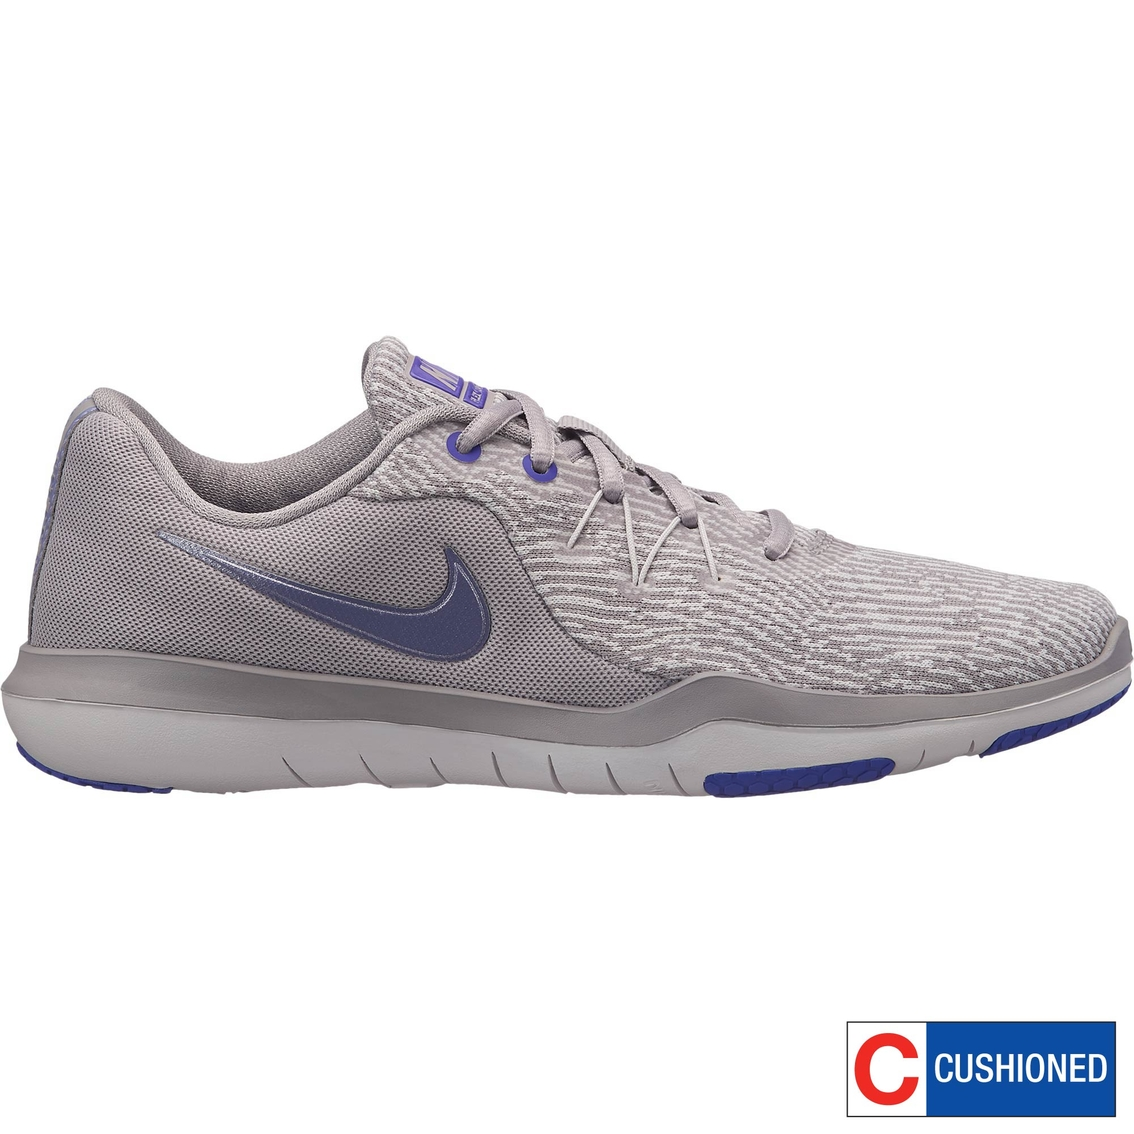 d02e57a147658 Nike Women s Flex Supreme Tr 6 Cross Training Sneakers